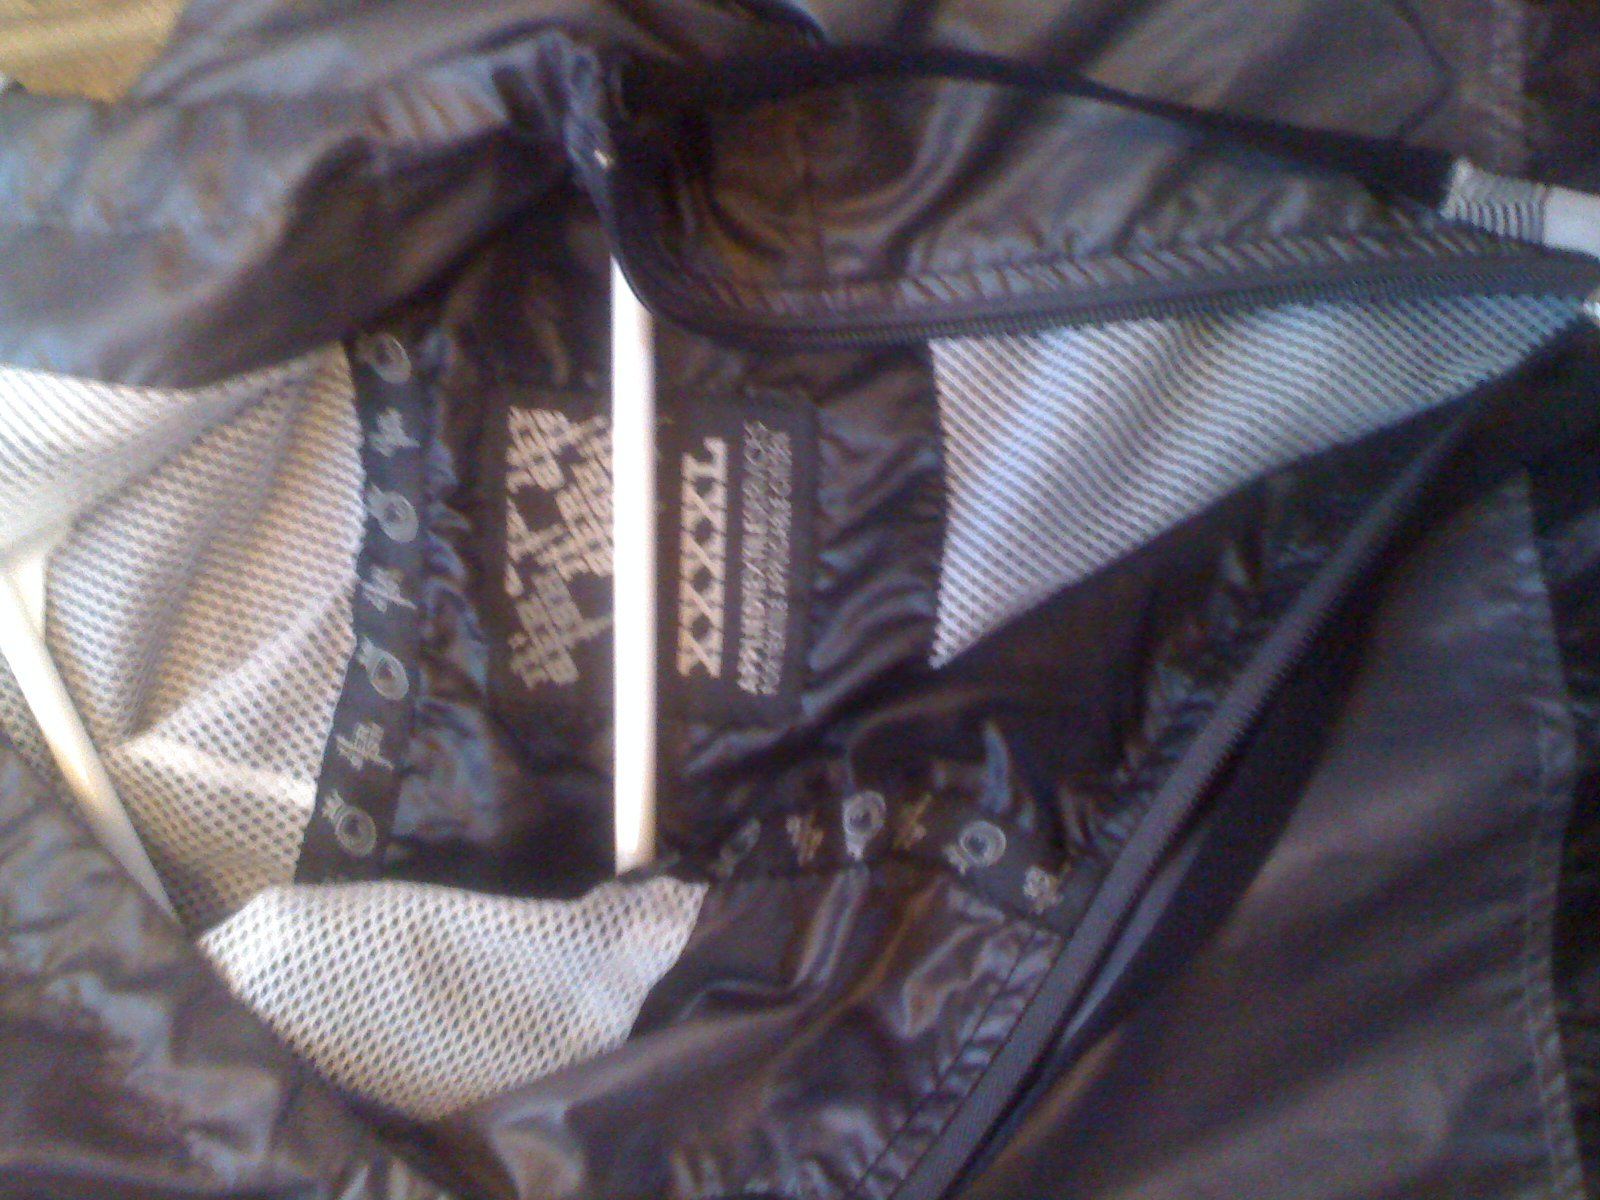 4x black and gray windbreaker